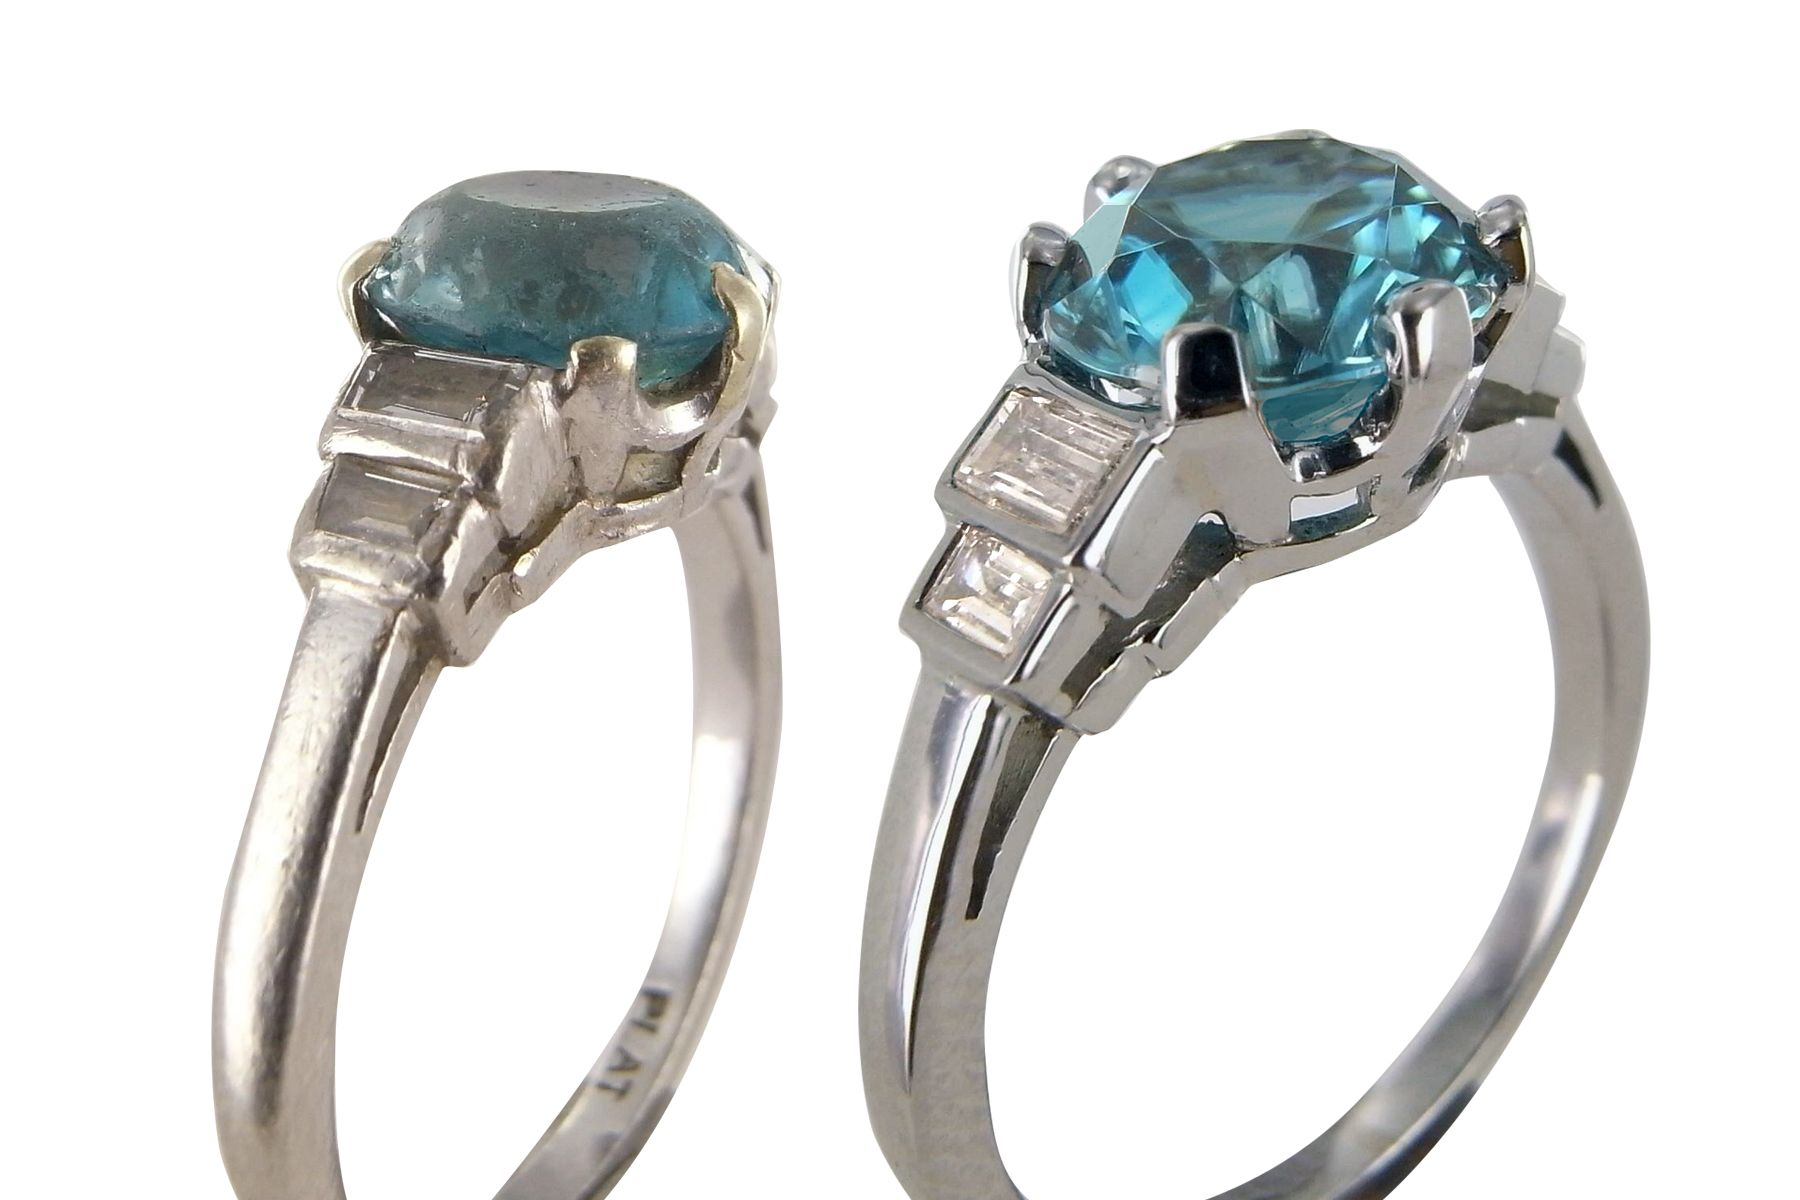 The head and settings were remade and the Zircon polished to make this ring look like new.